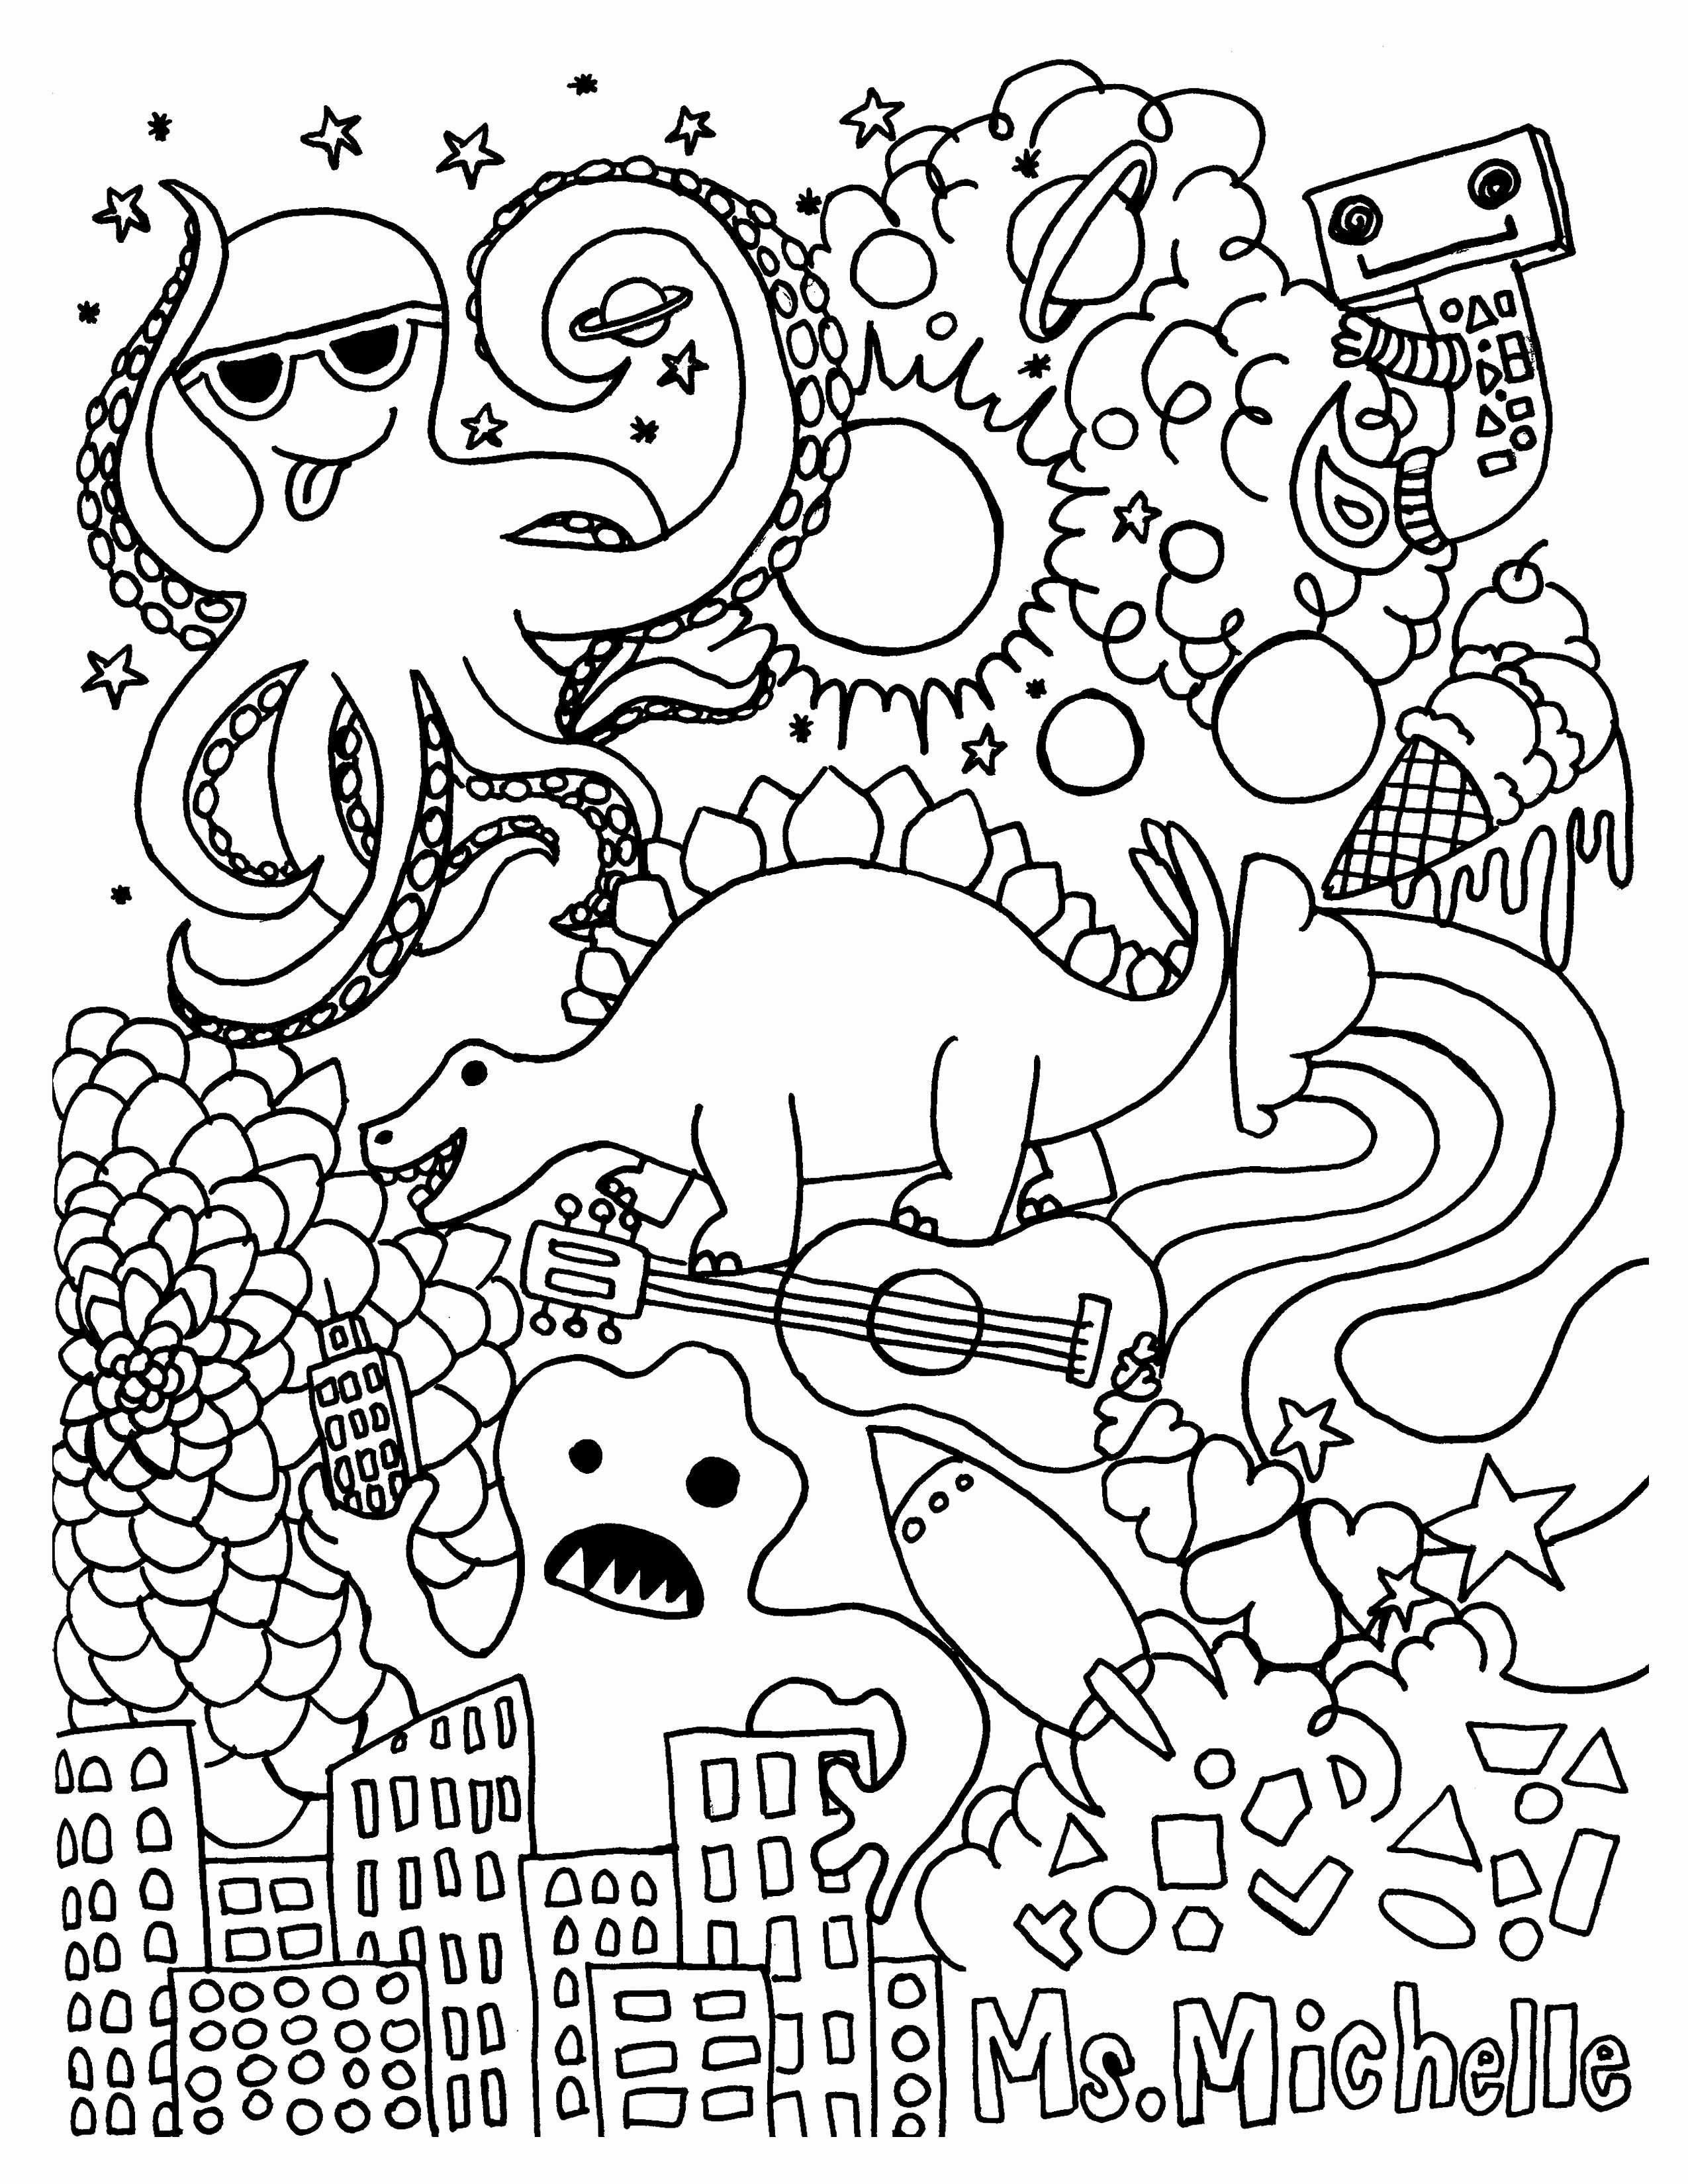 nickalodeon coloring pages Collection-Free Coloring Pages for Adults Halloween Free Coloring Pages Bible Awesome Free Coloring Pages for 13-i